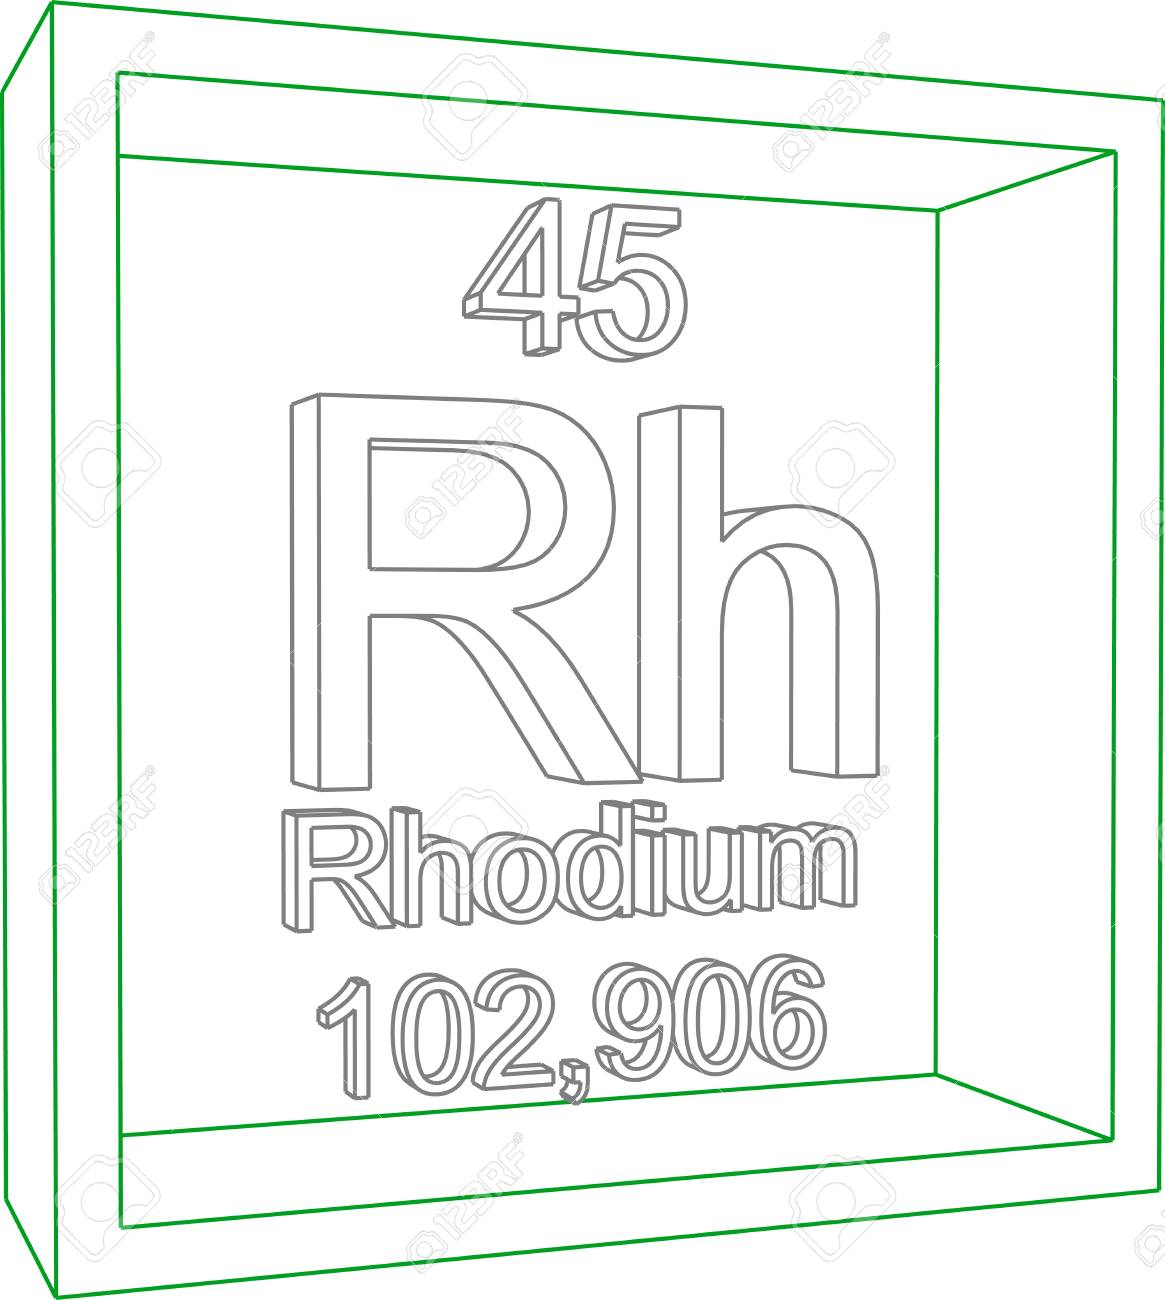 Rhodium on periodic table image collections periodic table images periodic table of elements rhodium royalty free cliparts periodic table of elements rhodium stock vector 57970473 gamestrikefo Image collections